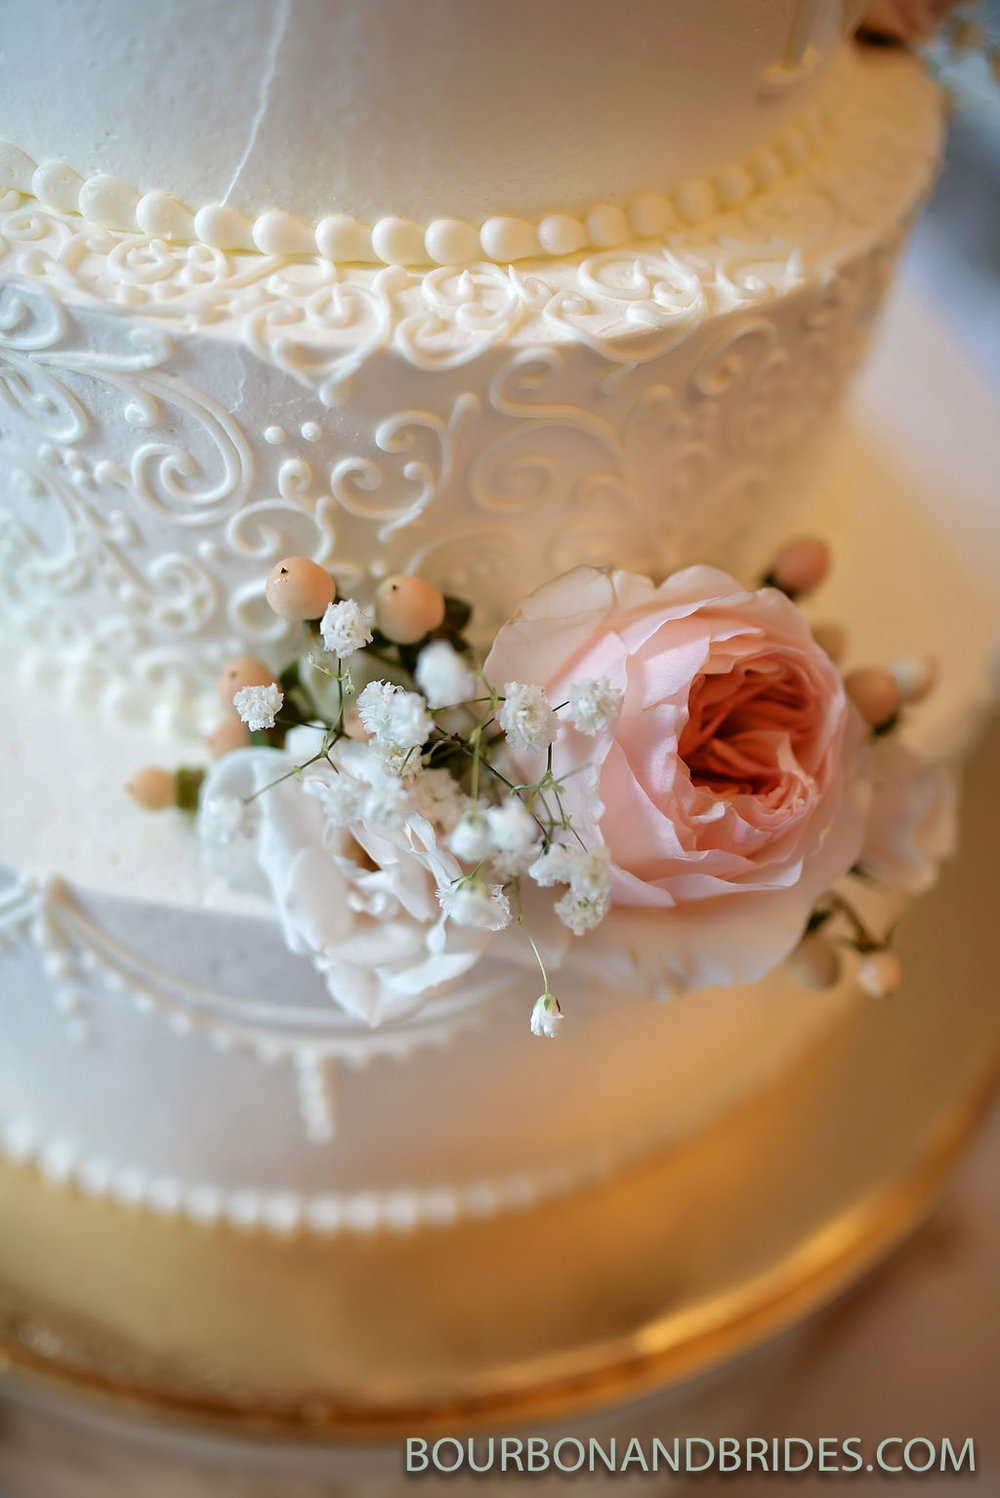 kentucky-wedding-cake.jpg